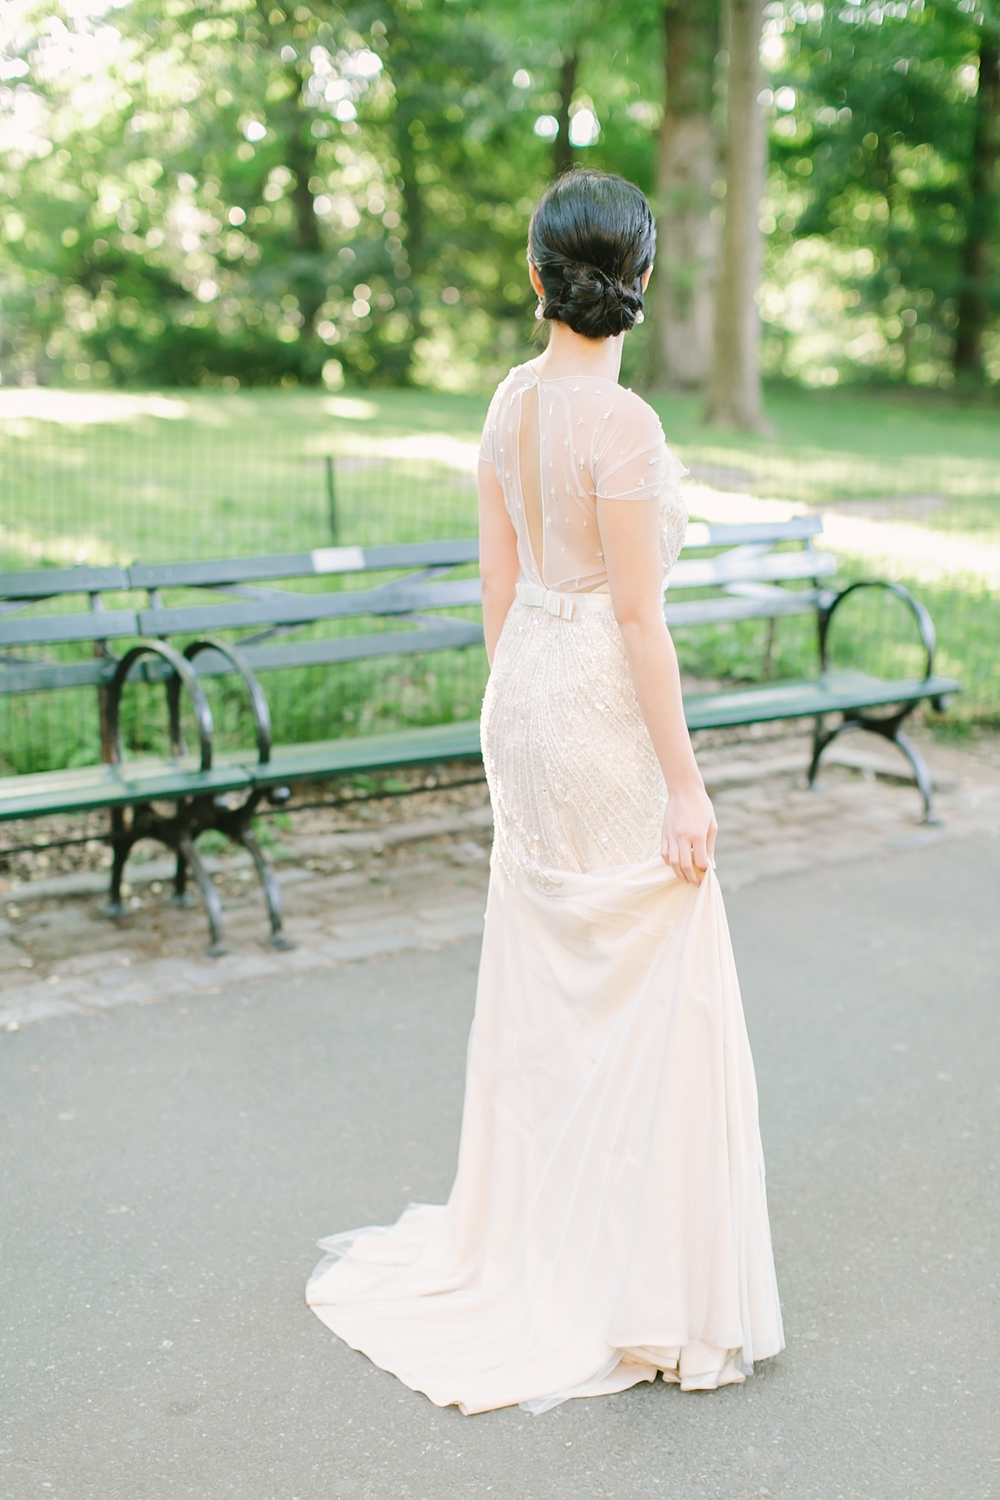 times_square_central_park_new_york_wedding_photos_0013.jpg